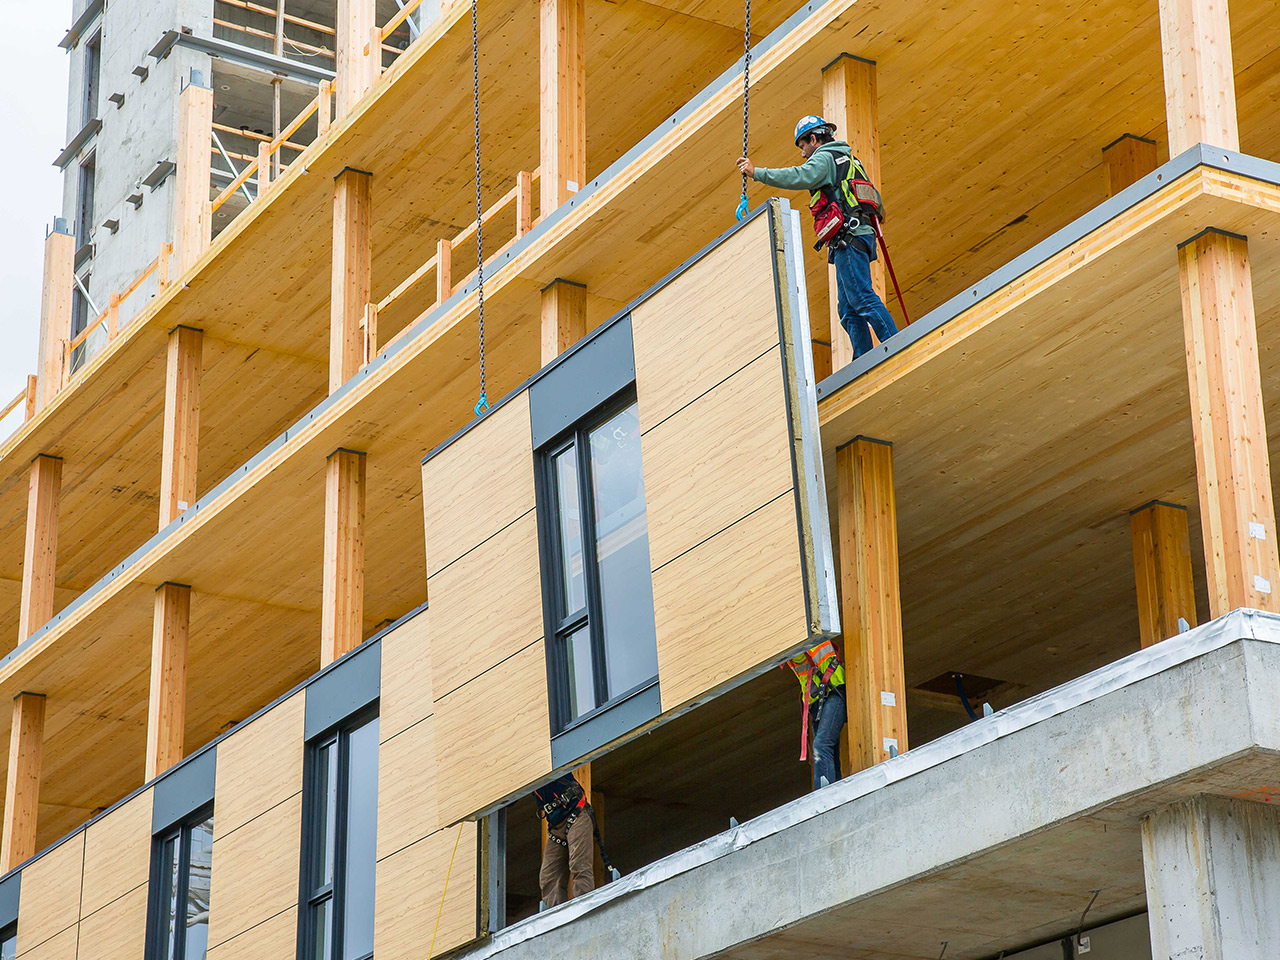 Brock Commons Tallwood House<abbr>Vancouver, B.C. Canada<br>Cross-laminated timber panels, glulam and parallel strand lumber columns</abbr>